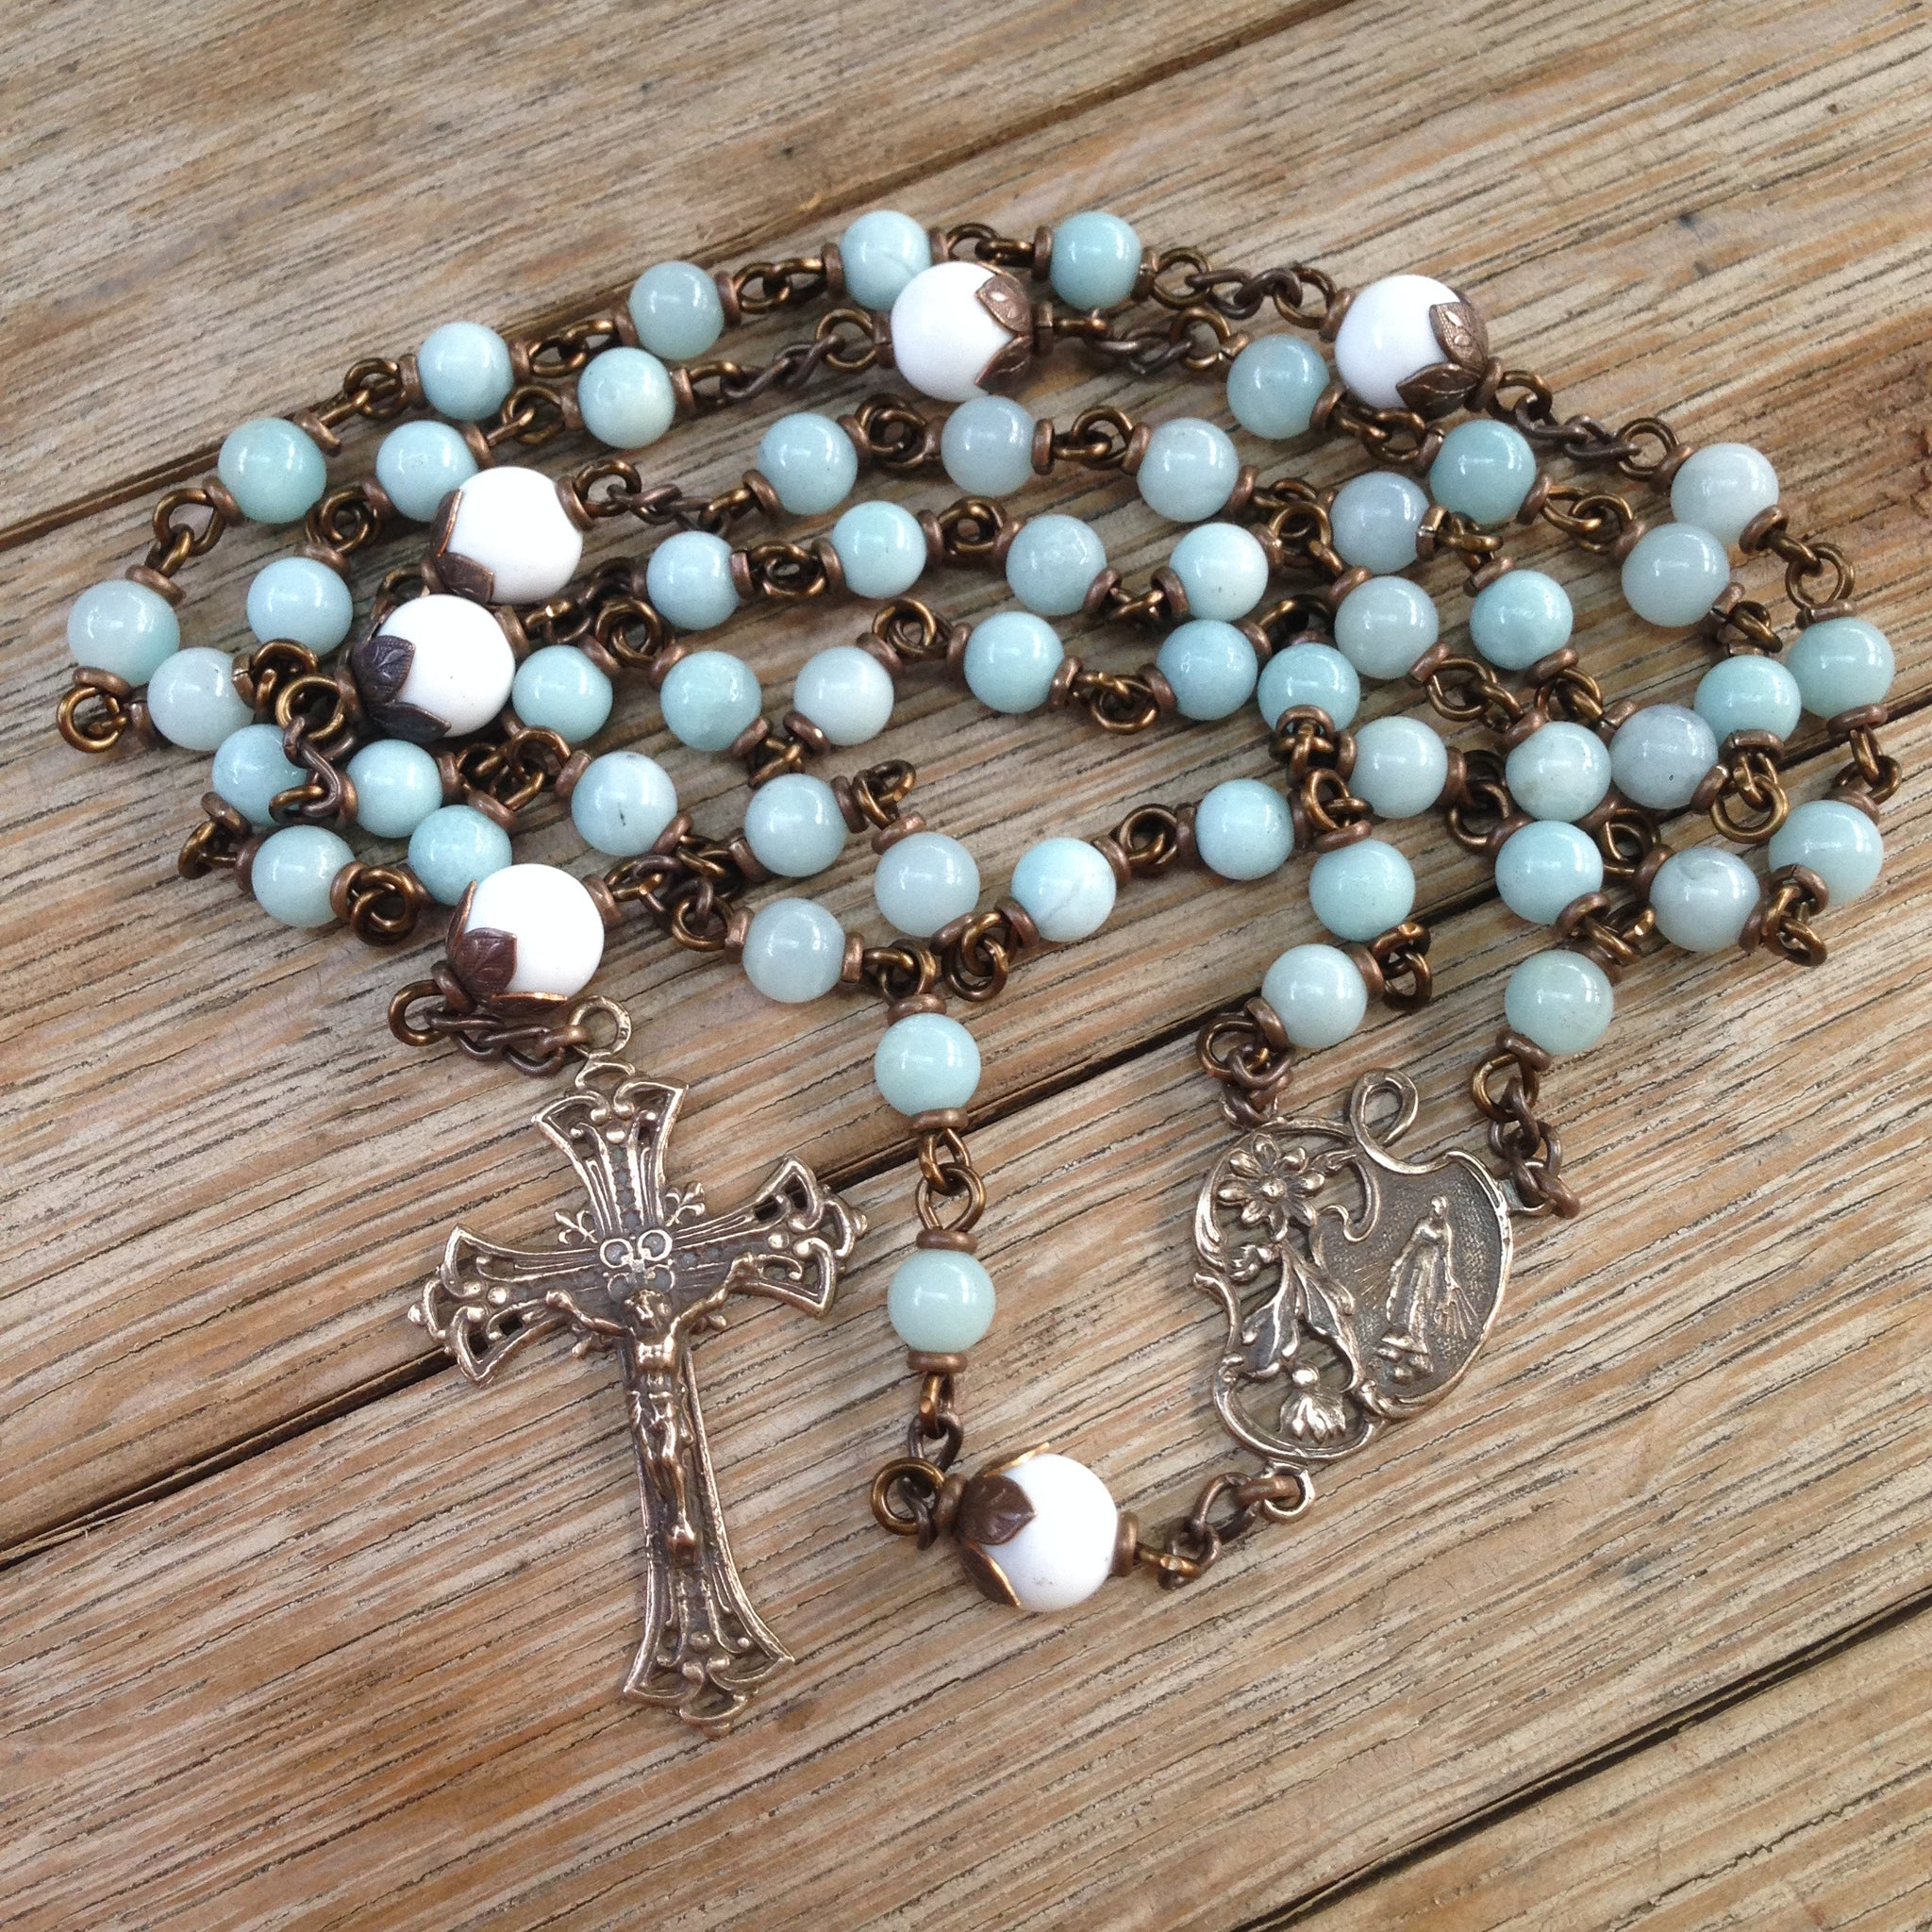 Bronze Rosary made with Amazonite beads